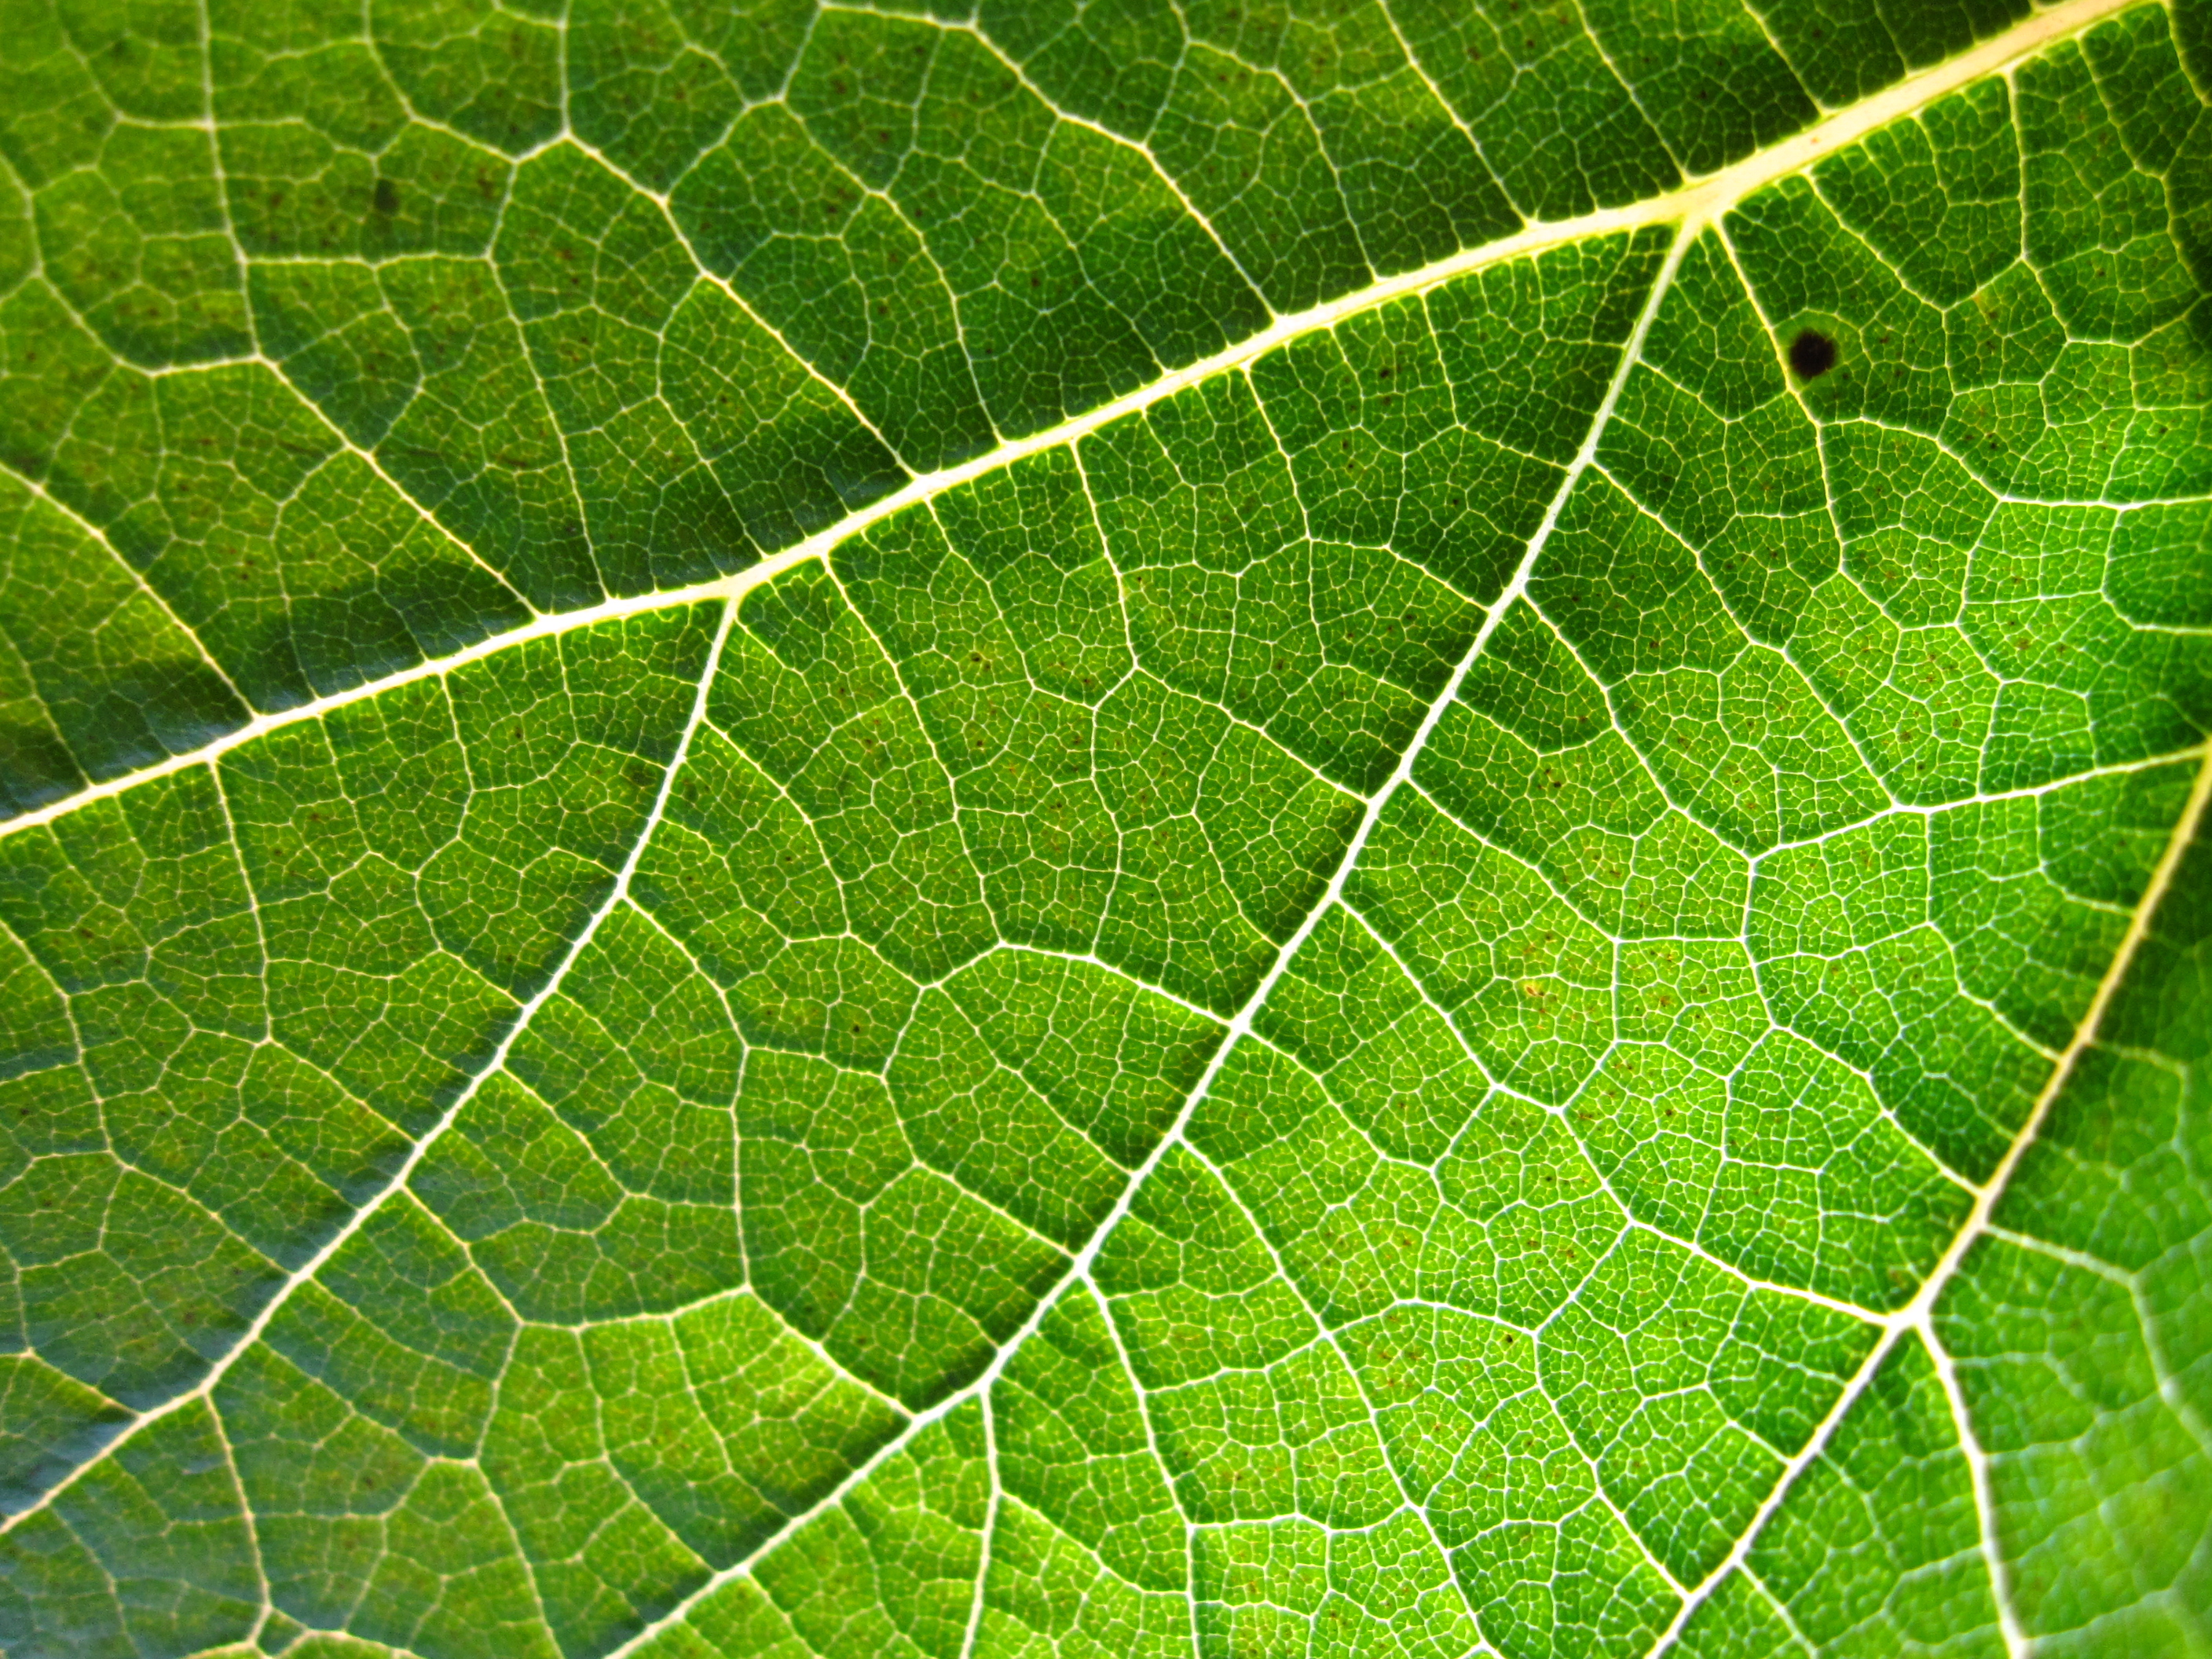 http://commons.wikimedia.org/wiki/File:Grapevine_leaf.jpg